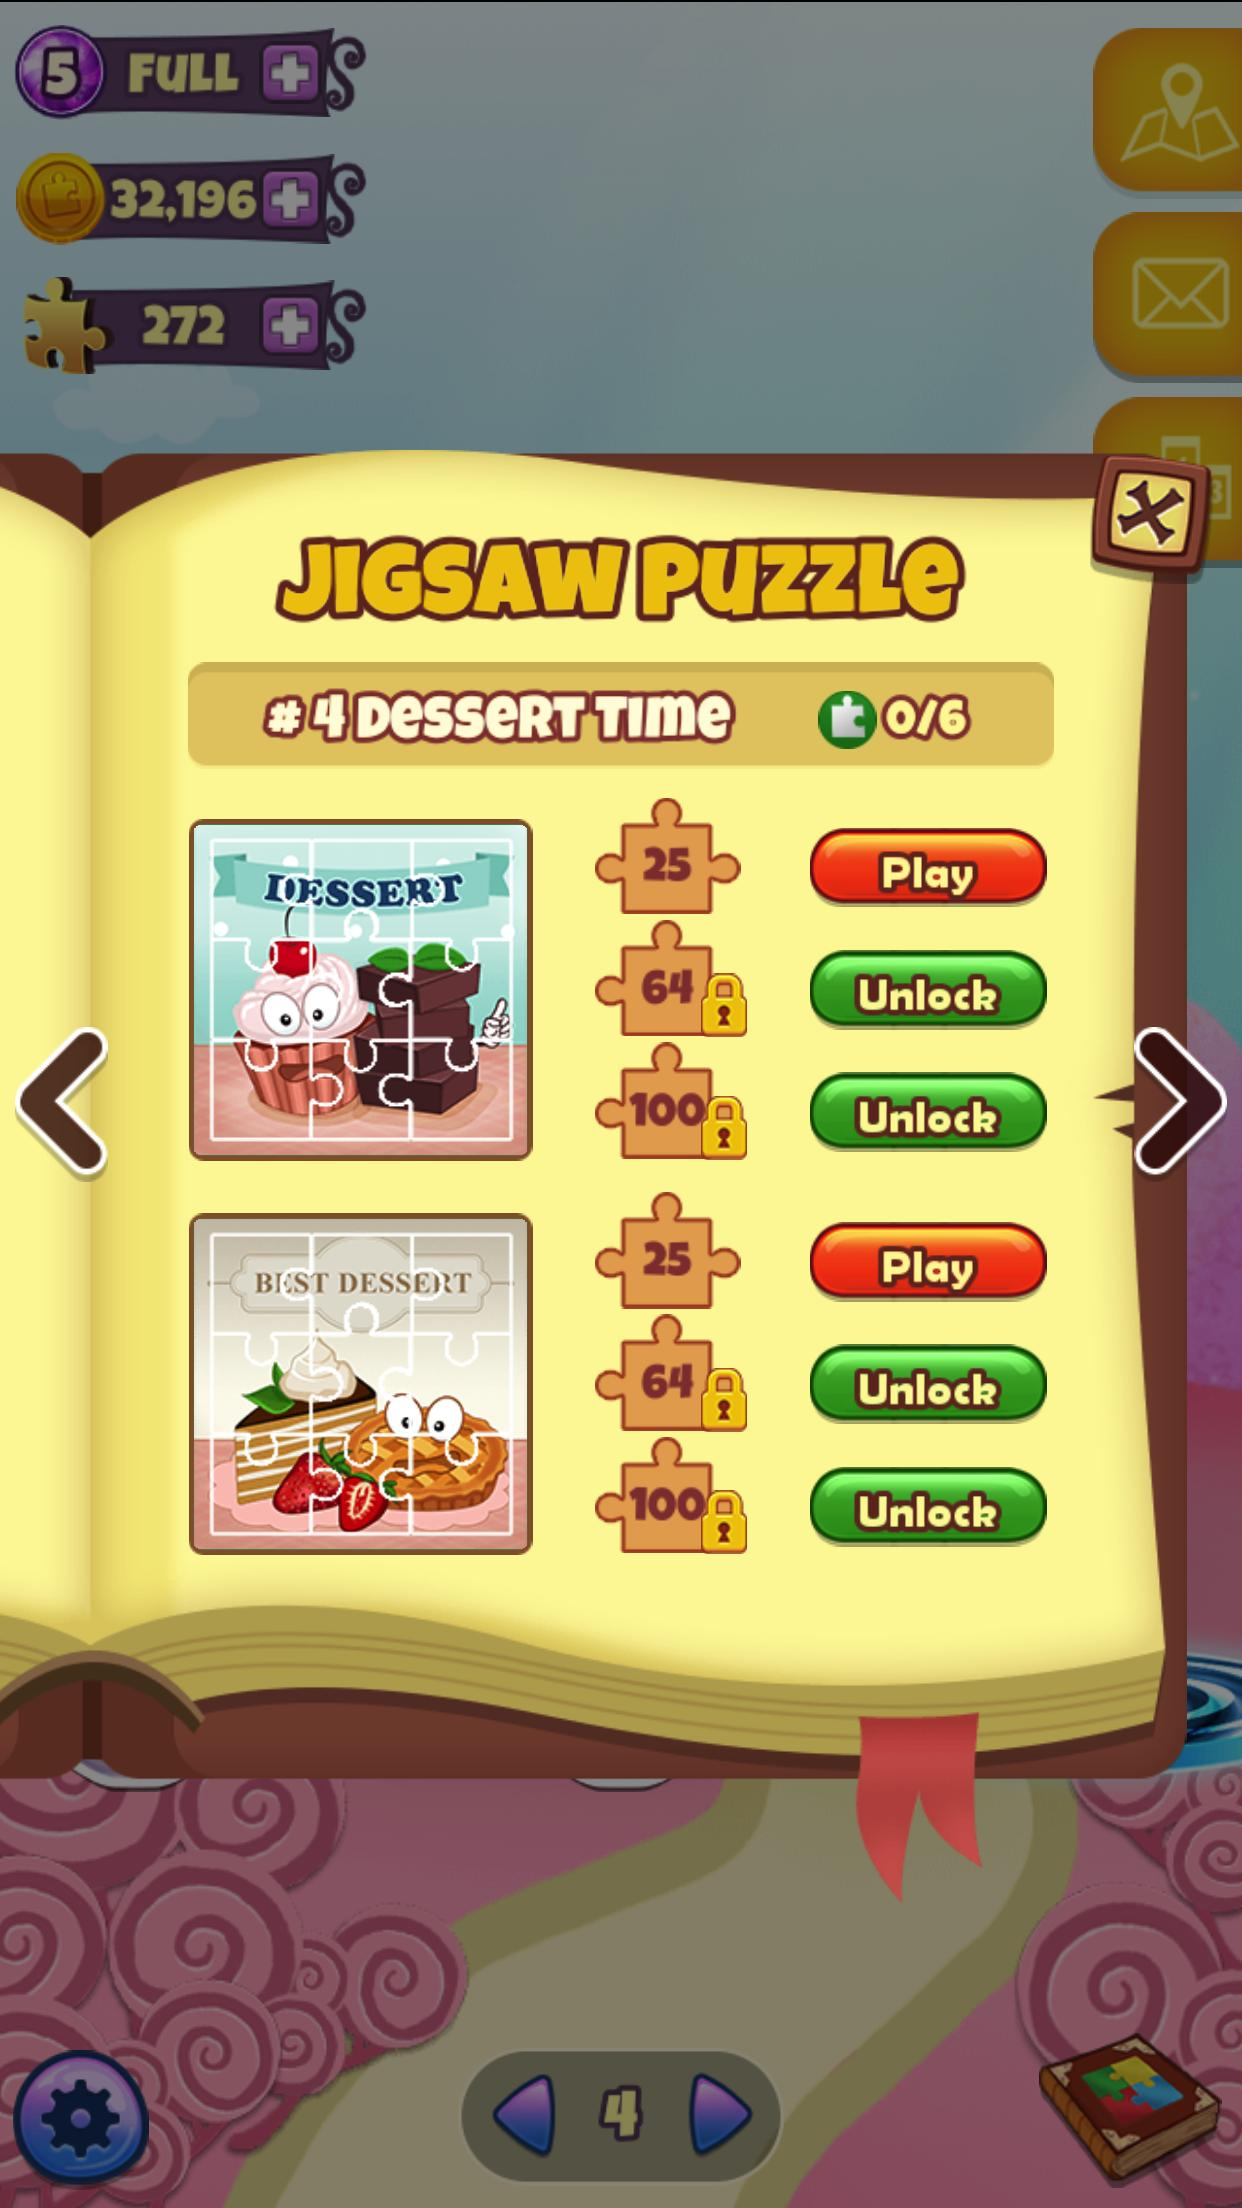 The Mystic Puzzland - Griddlers & Nonogram Puzzles 1.0.26 Screenshot 9